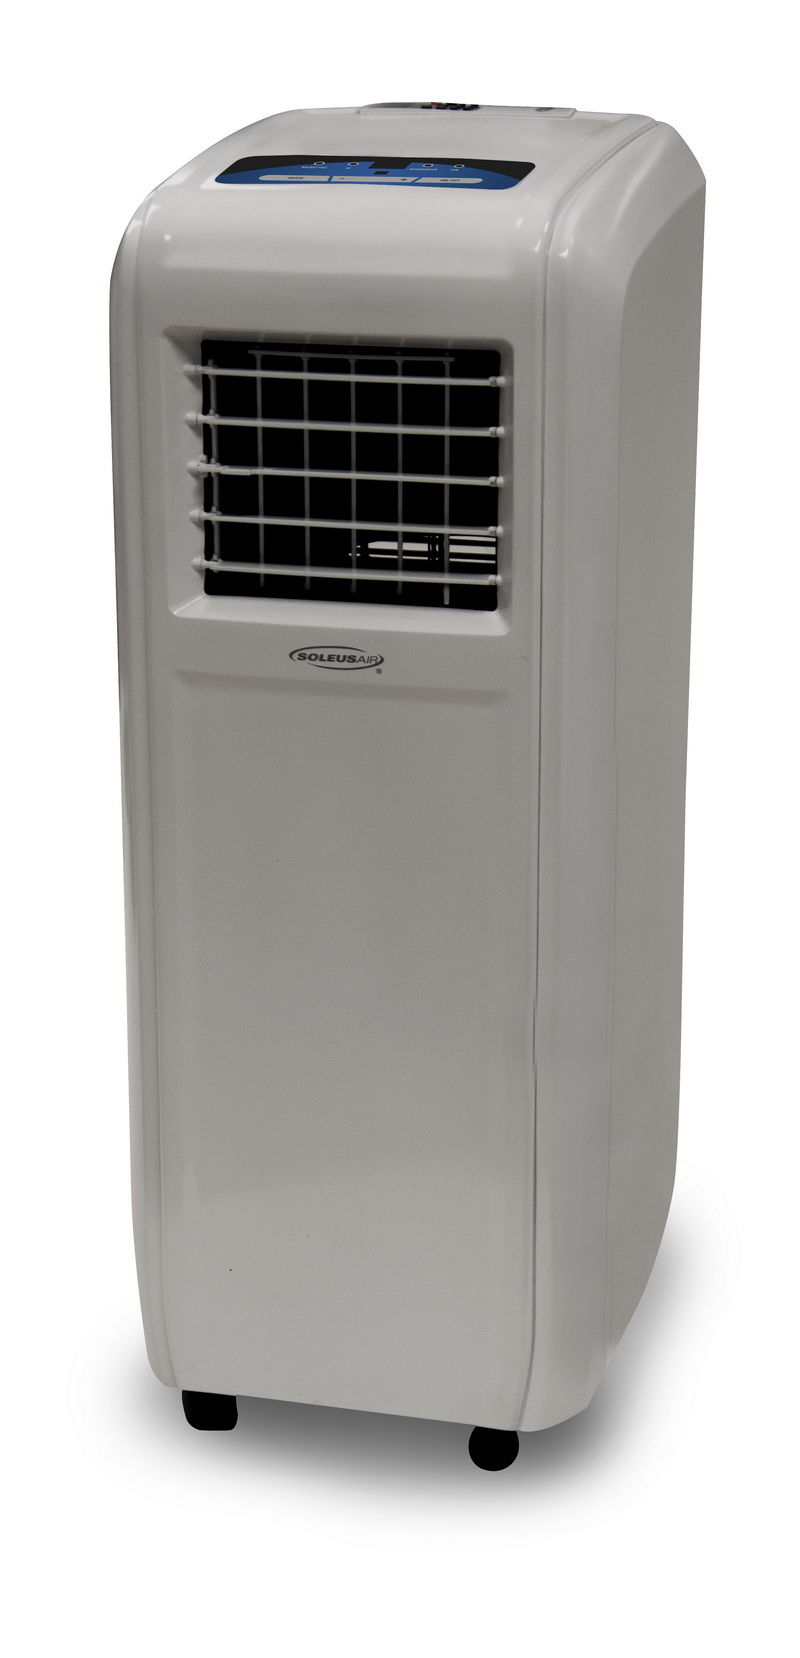 Soleus Air 8,000 BTU Evaporative Portable AC